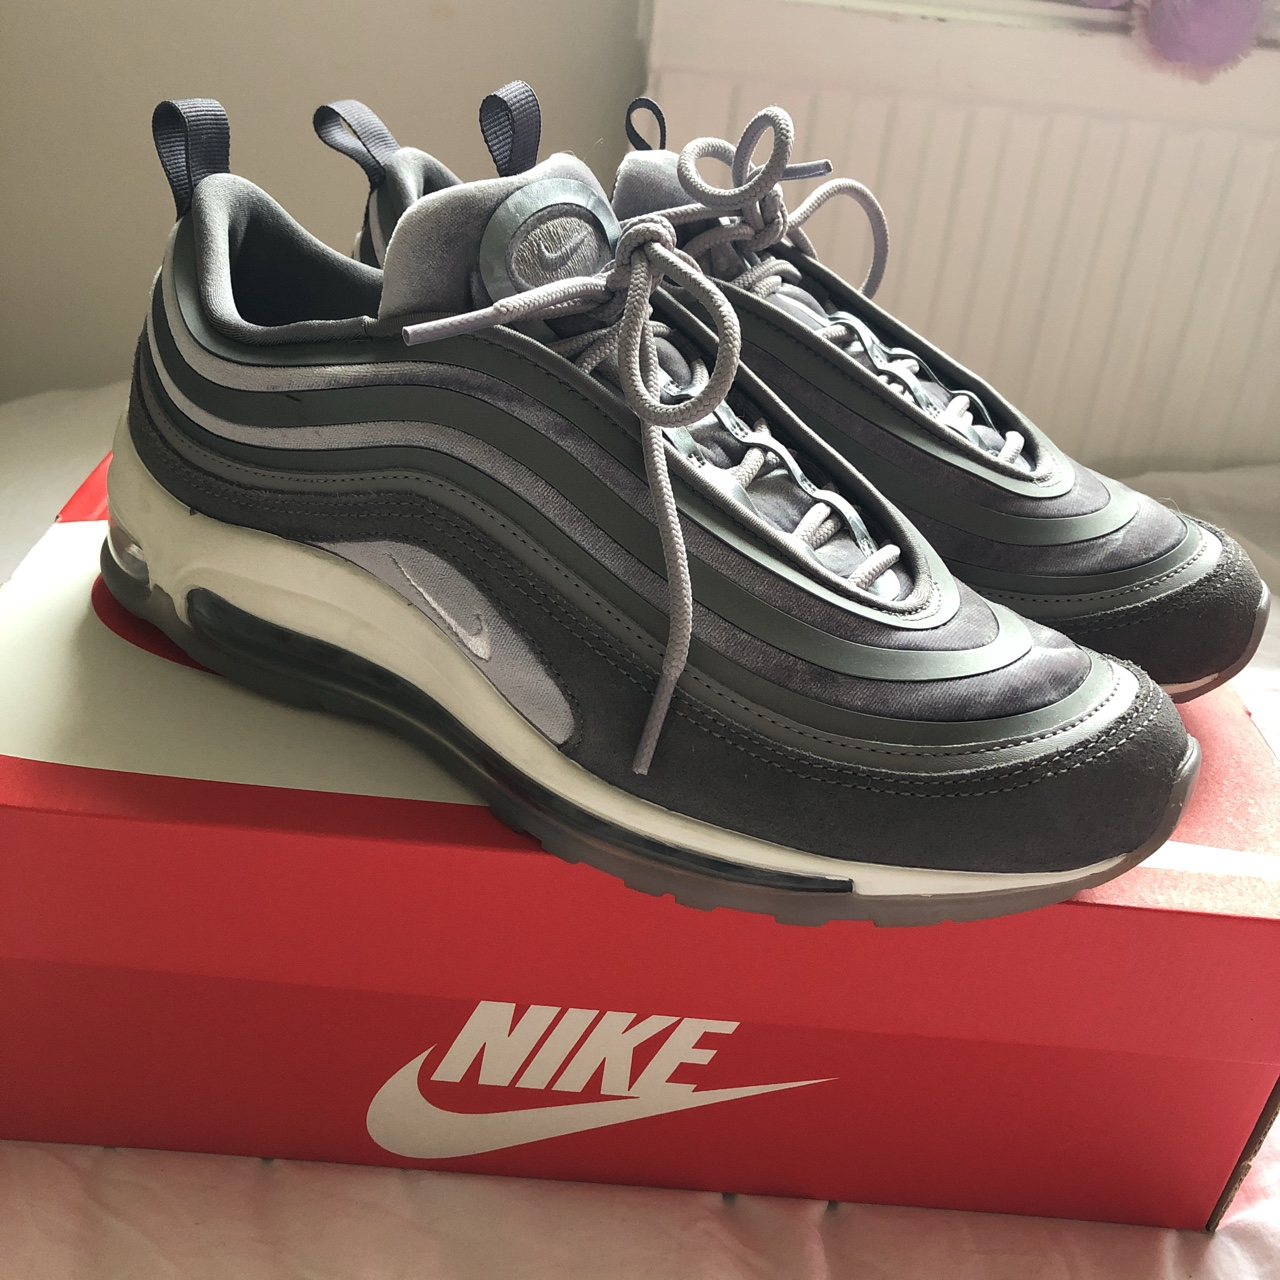 Legit check Nike Air Max 97 X Off White Meetapp